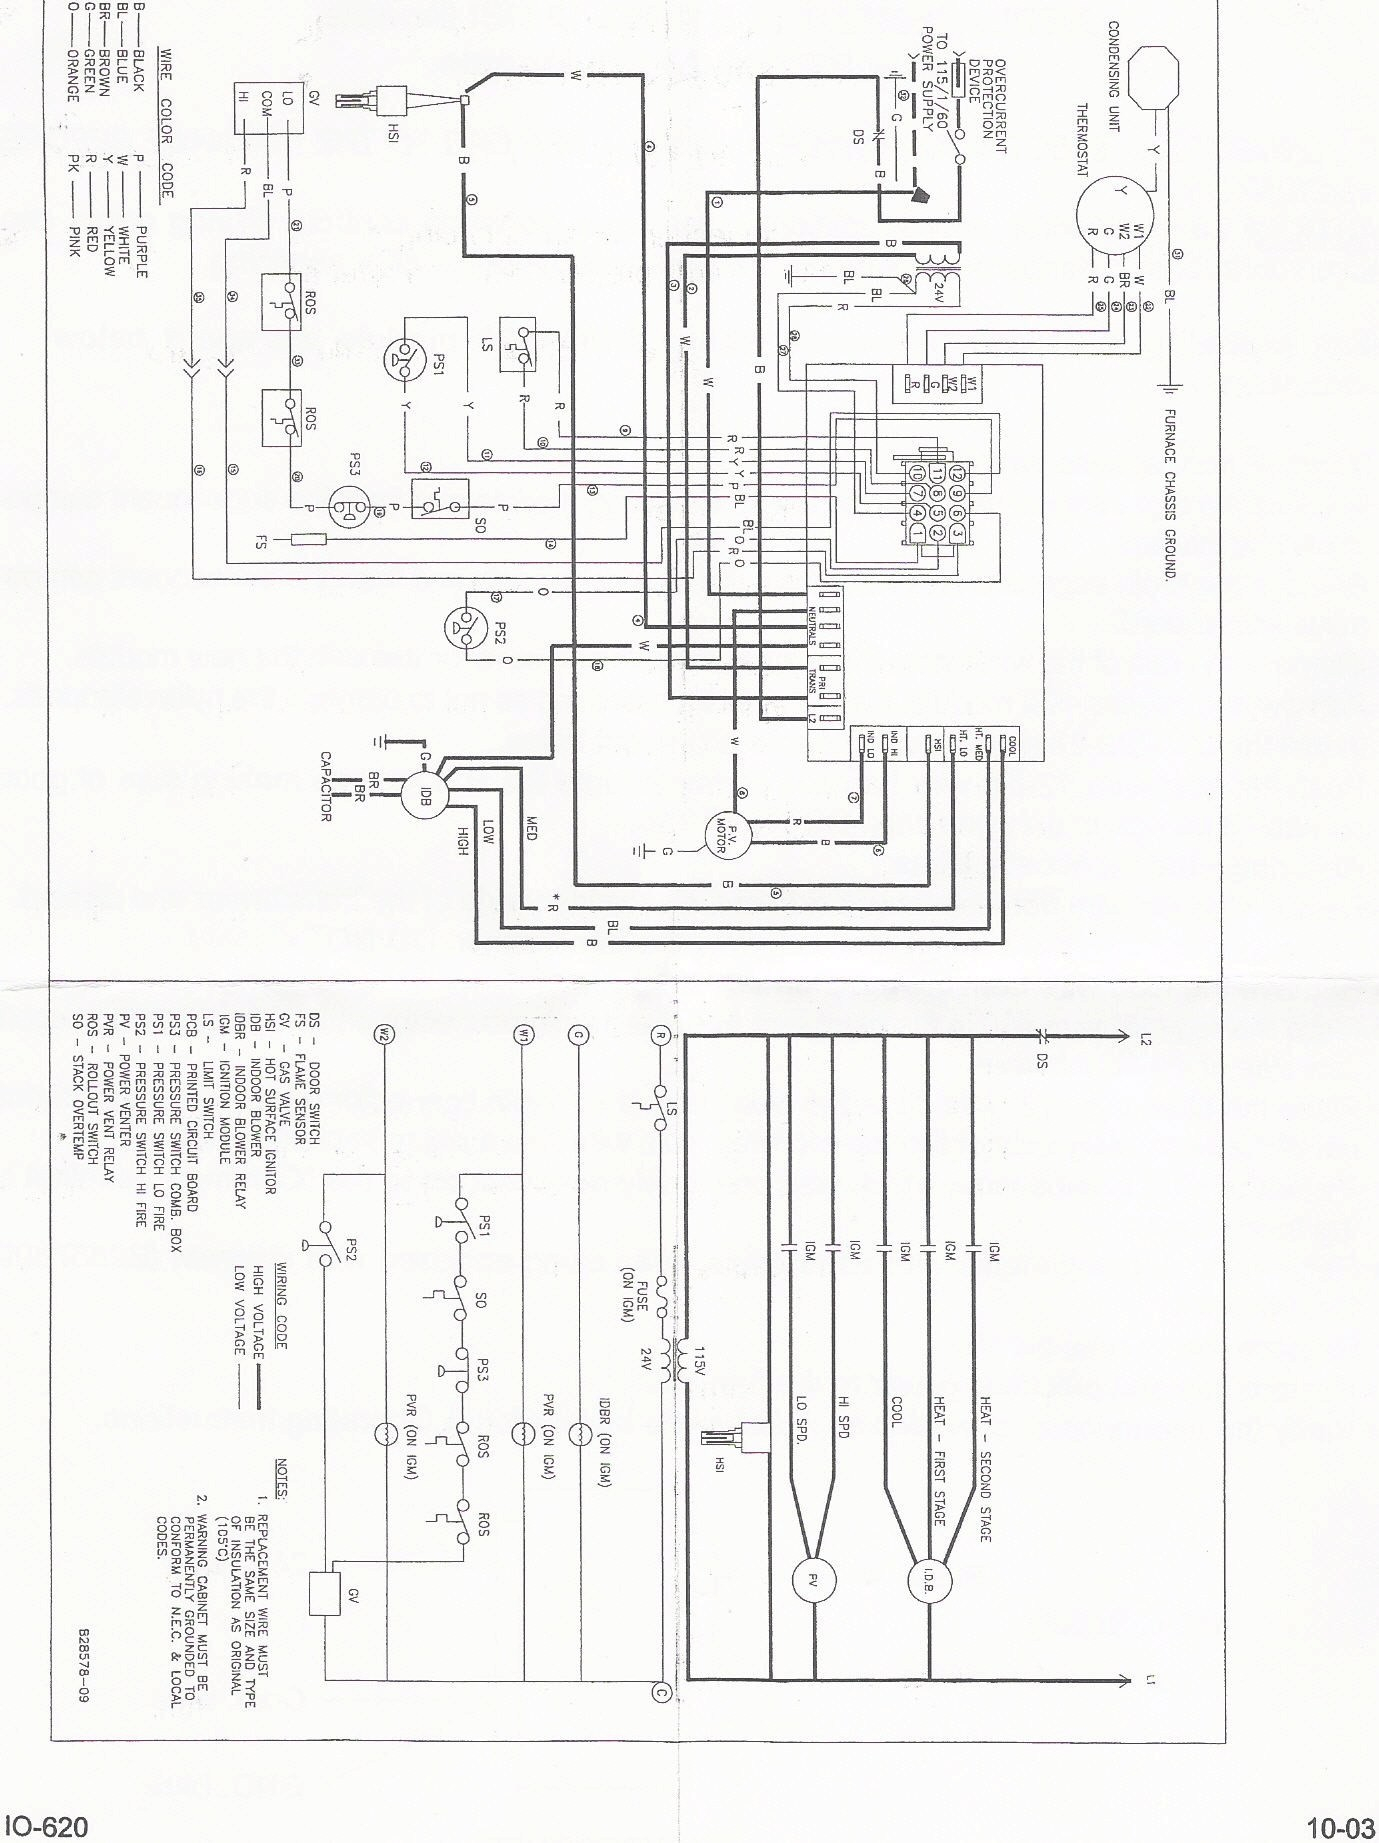 Rheem Package Unit Schematic